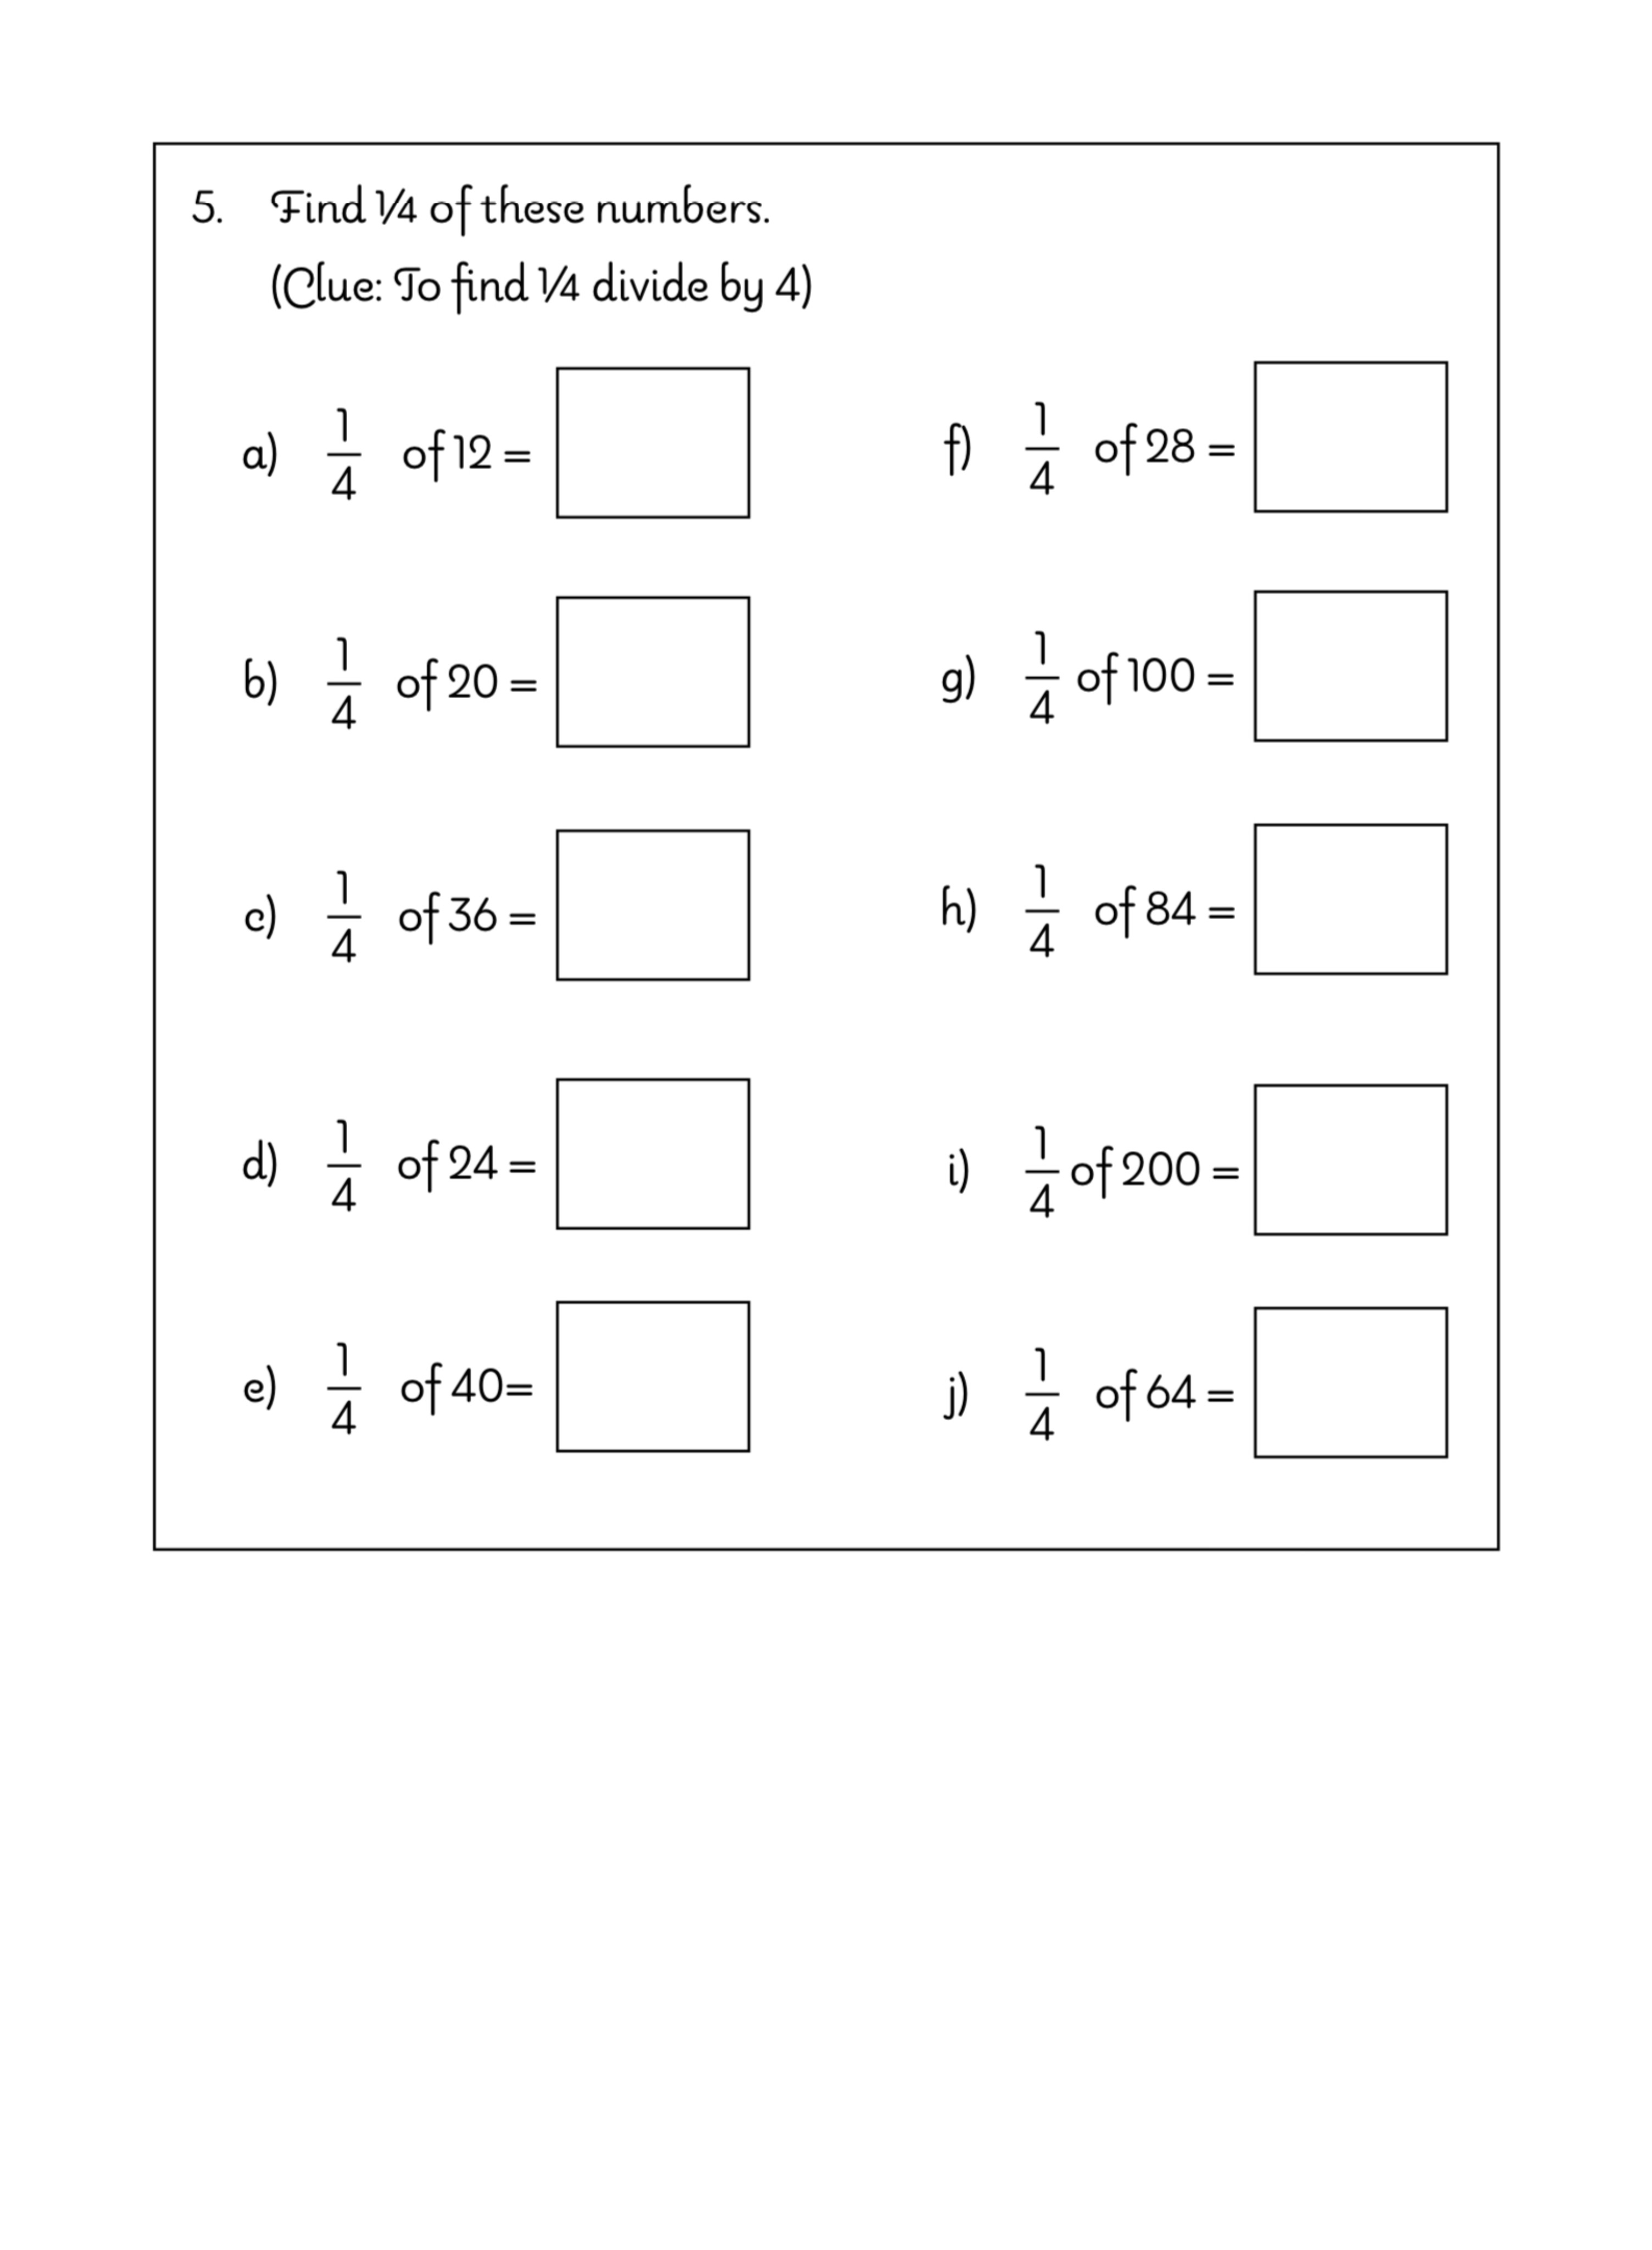 Let's Practise Maths: Fractions (9-12 years)